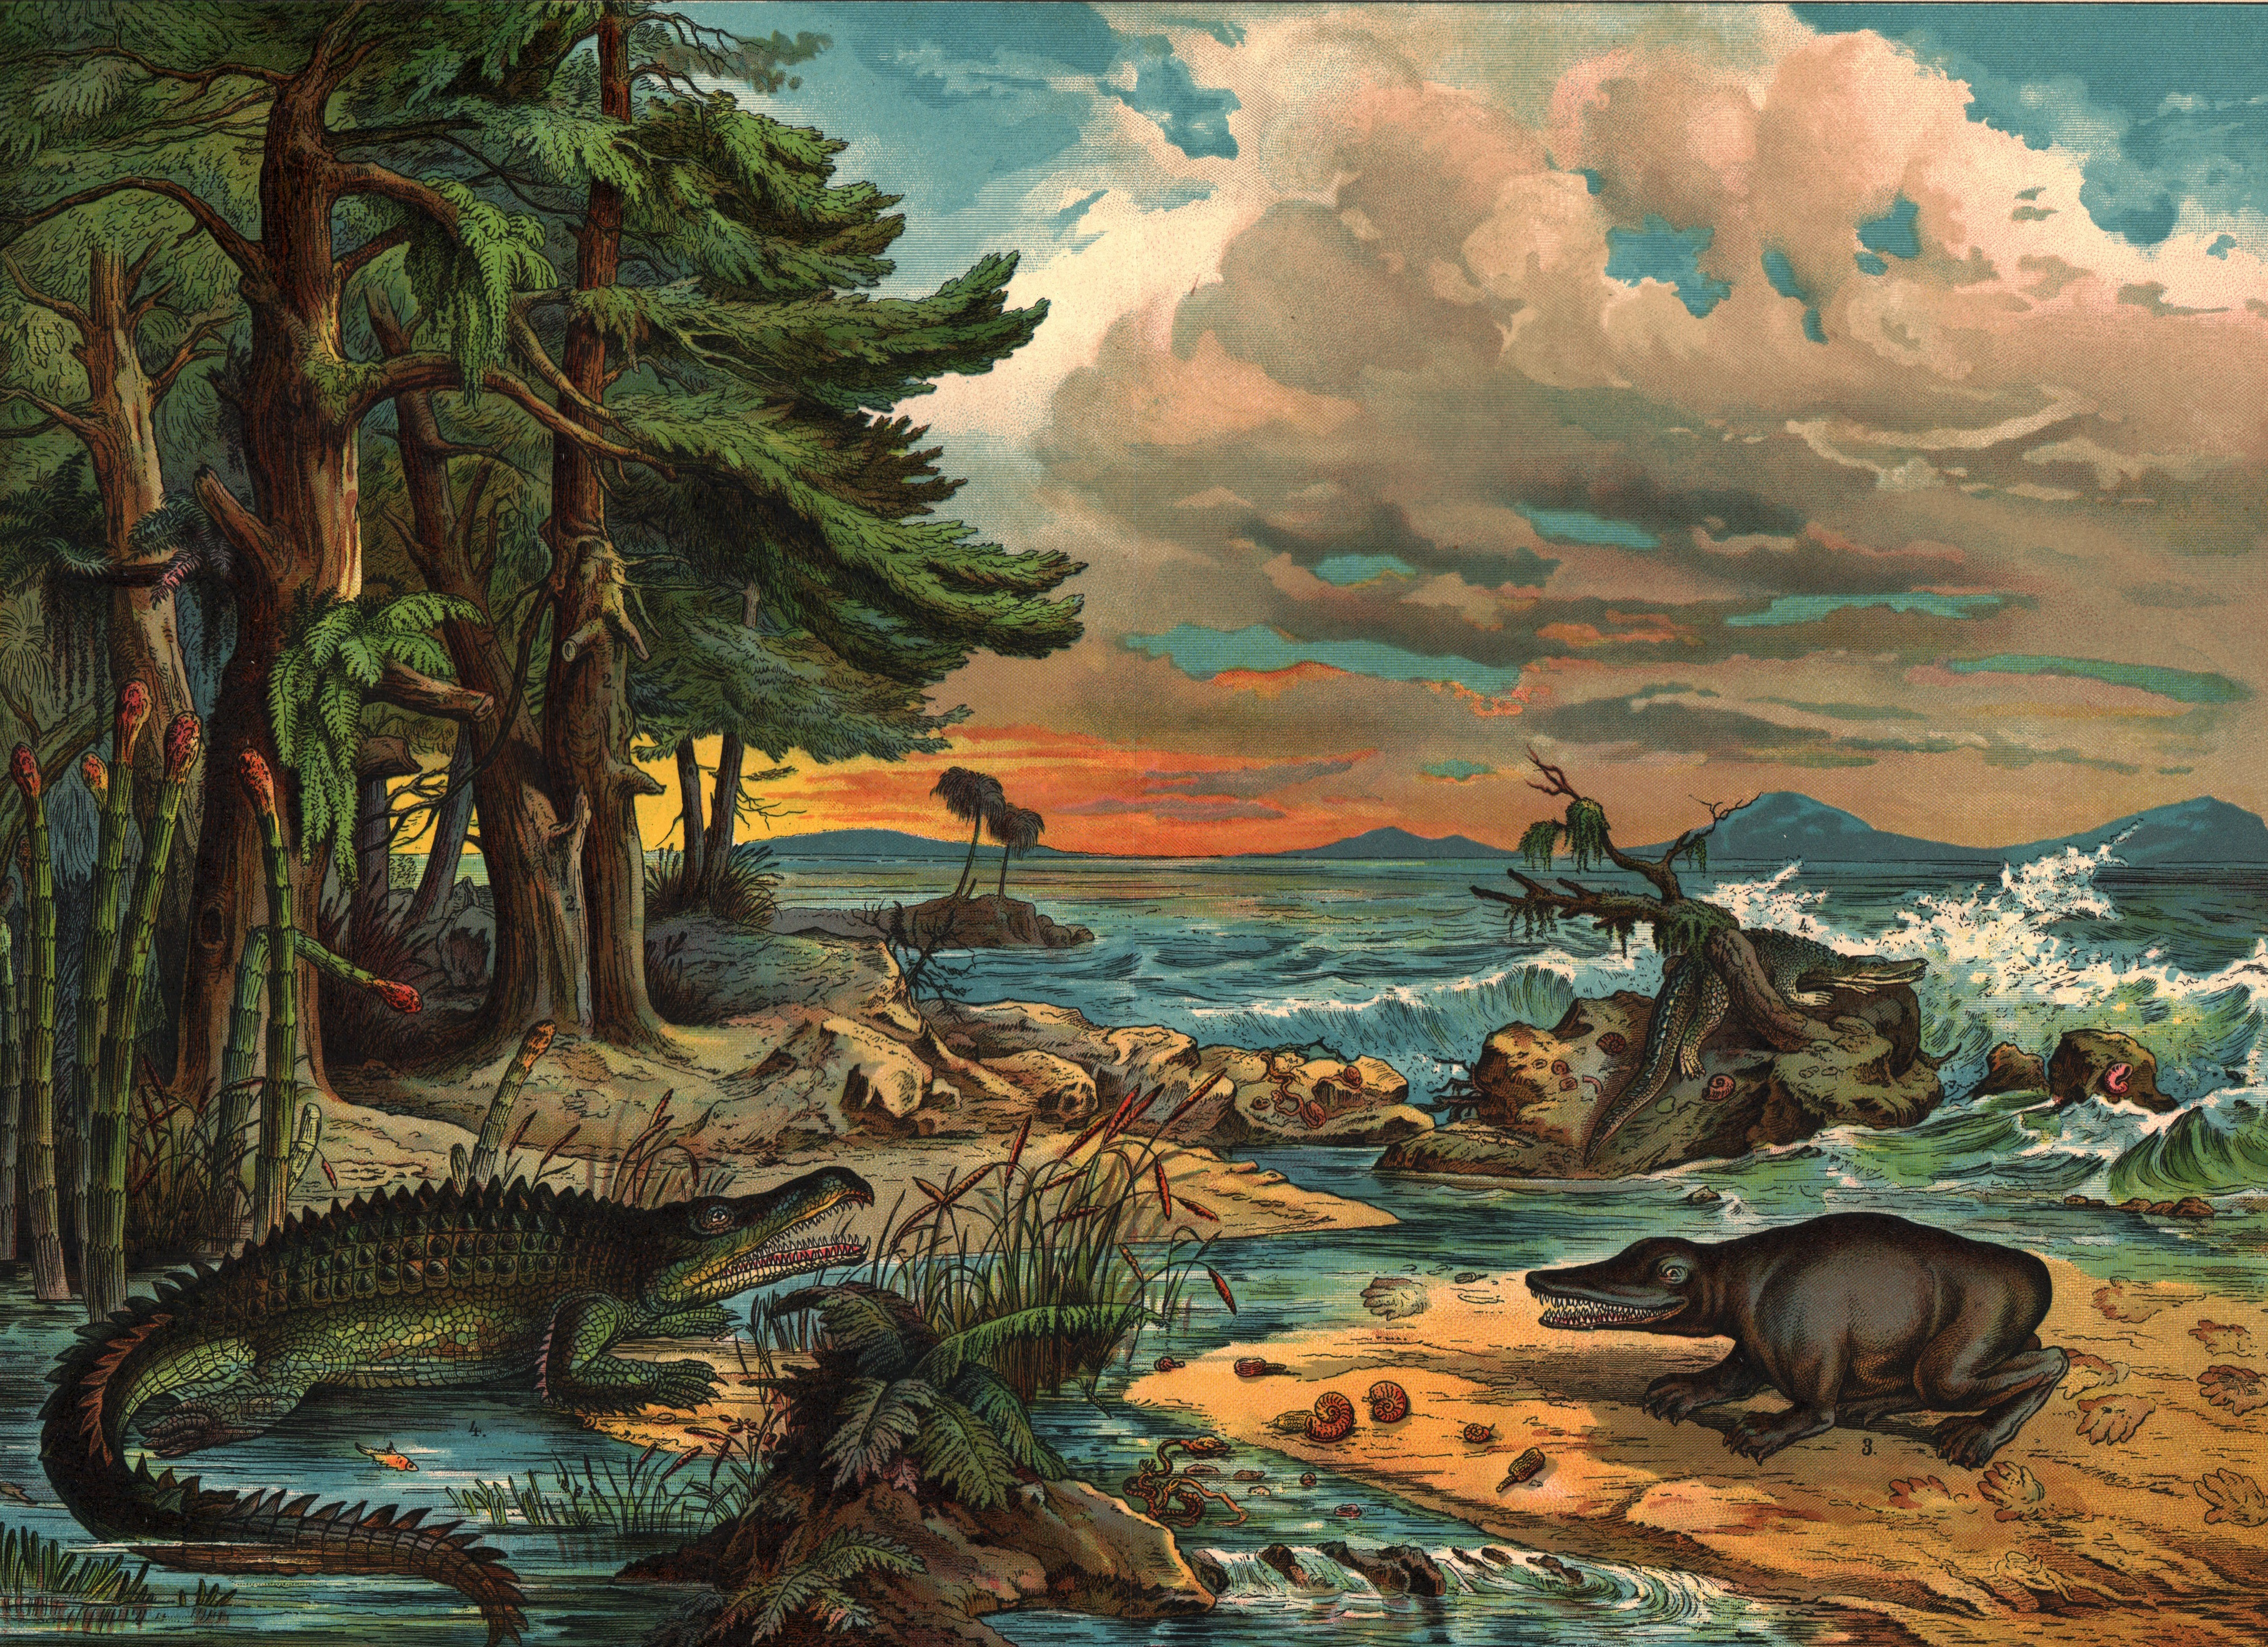 Dinosaurs near the Sea